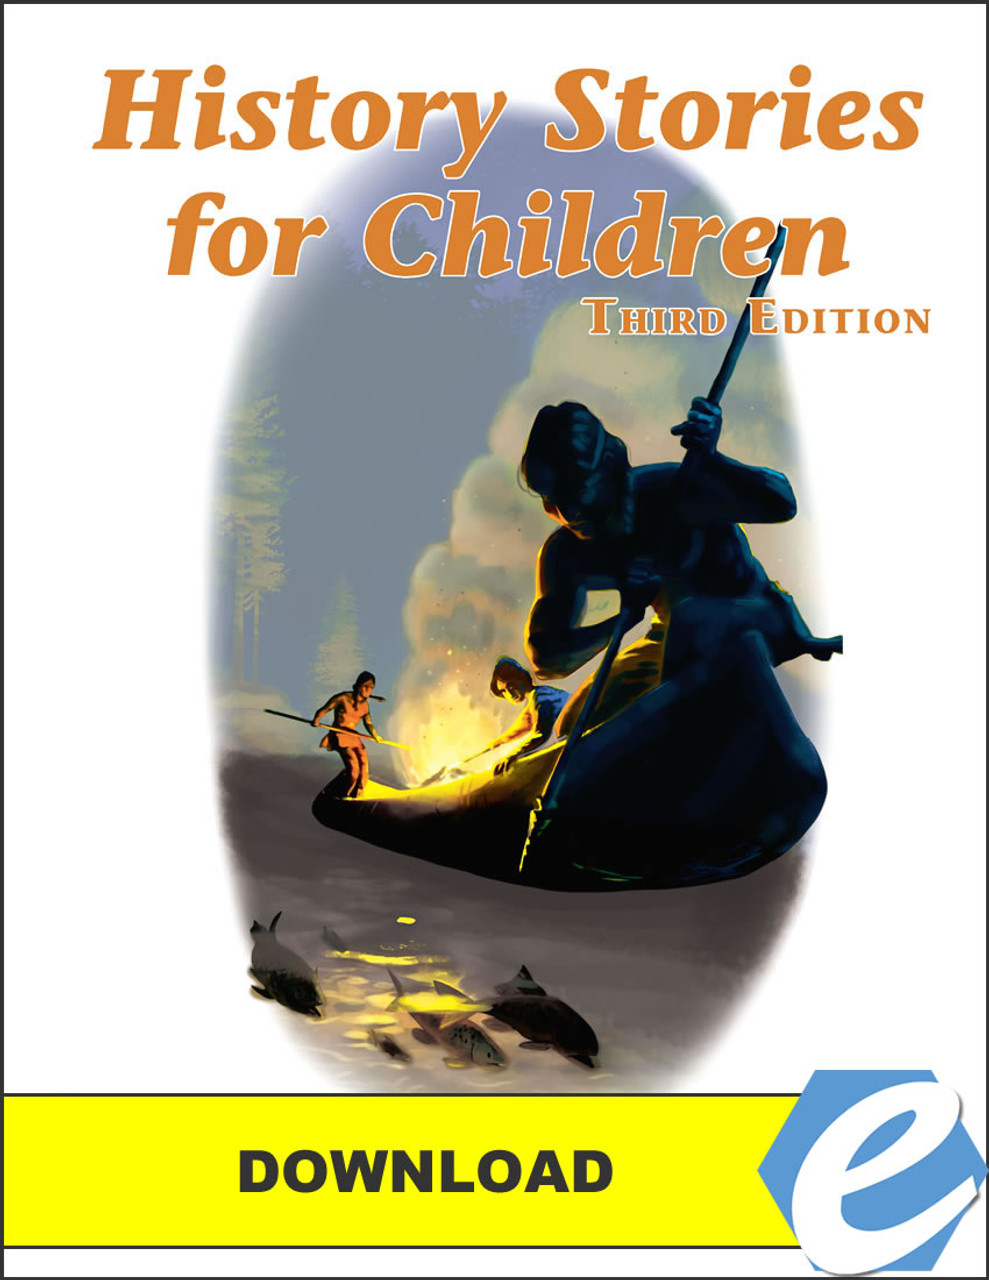 History Stories for Children, 3rd edition - Student Exercises - PDF Download